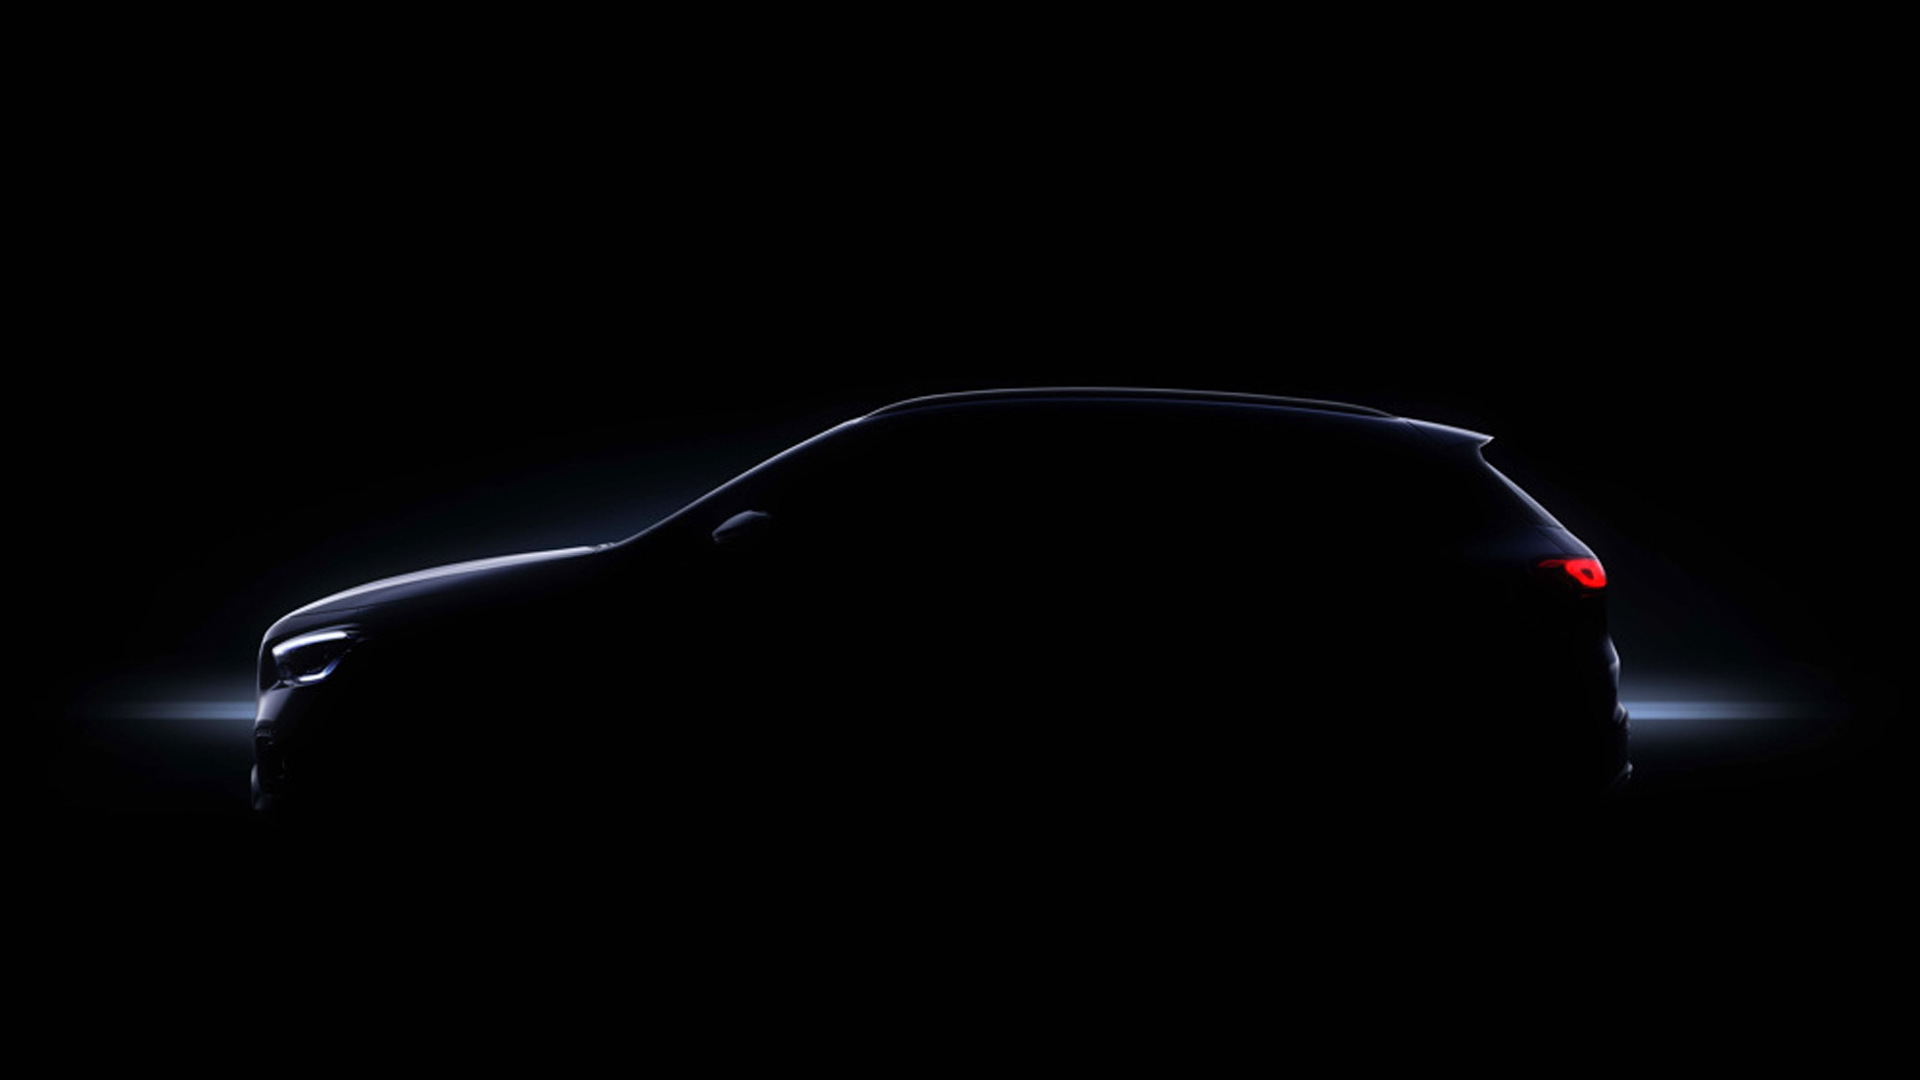 Teaser for 2021 Mercedes-Benz GLA debuting on December 11, 2019